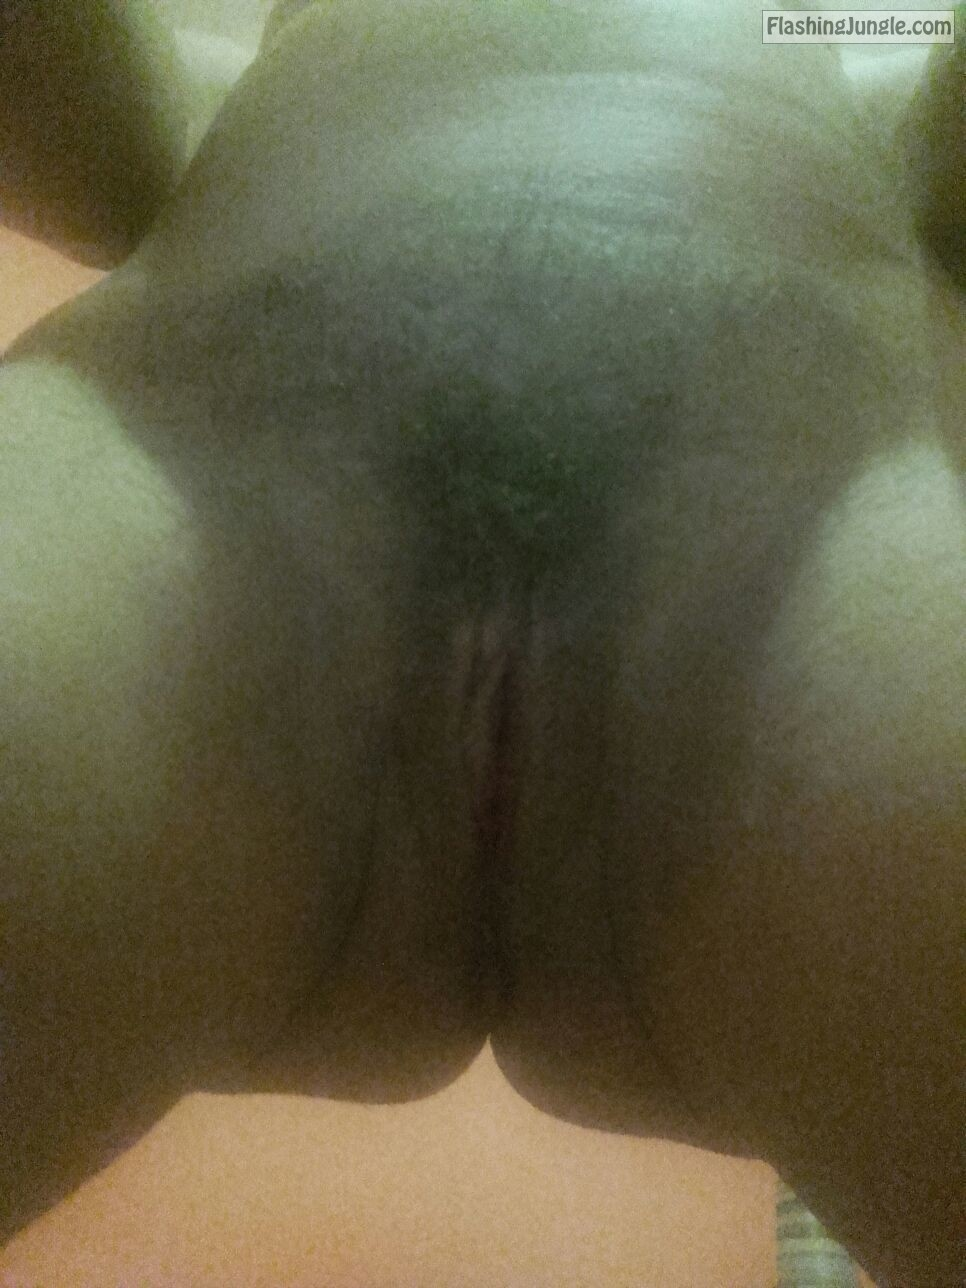 Beautiful hairy cunt of my sis real nudity pussy flash no panties